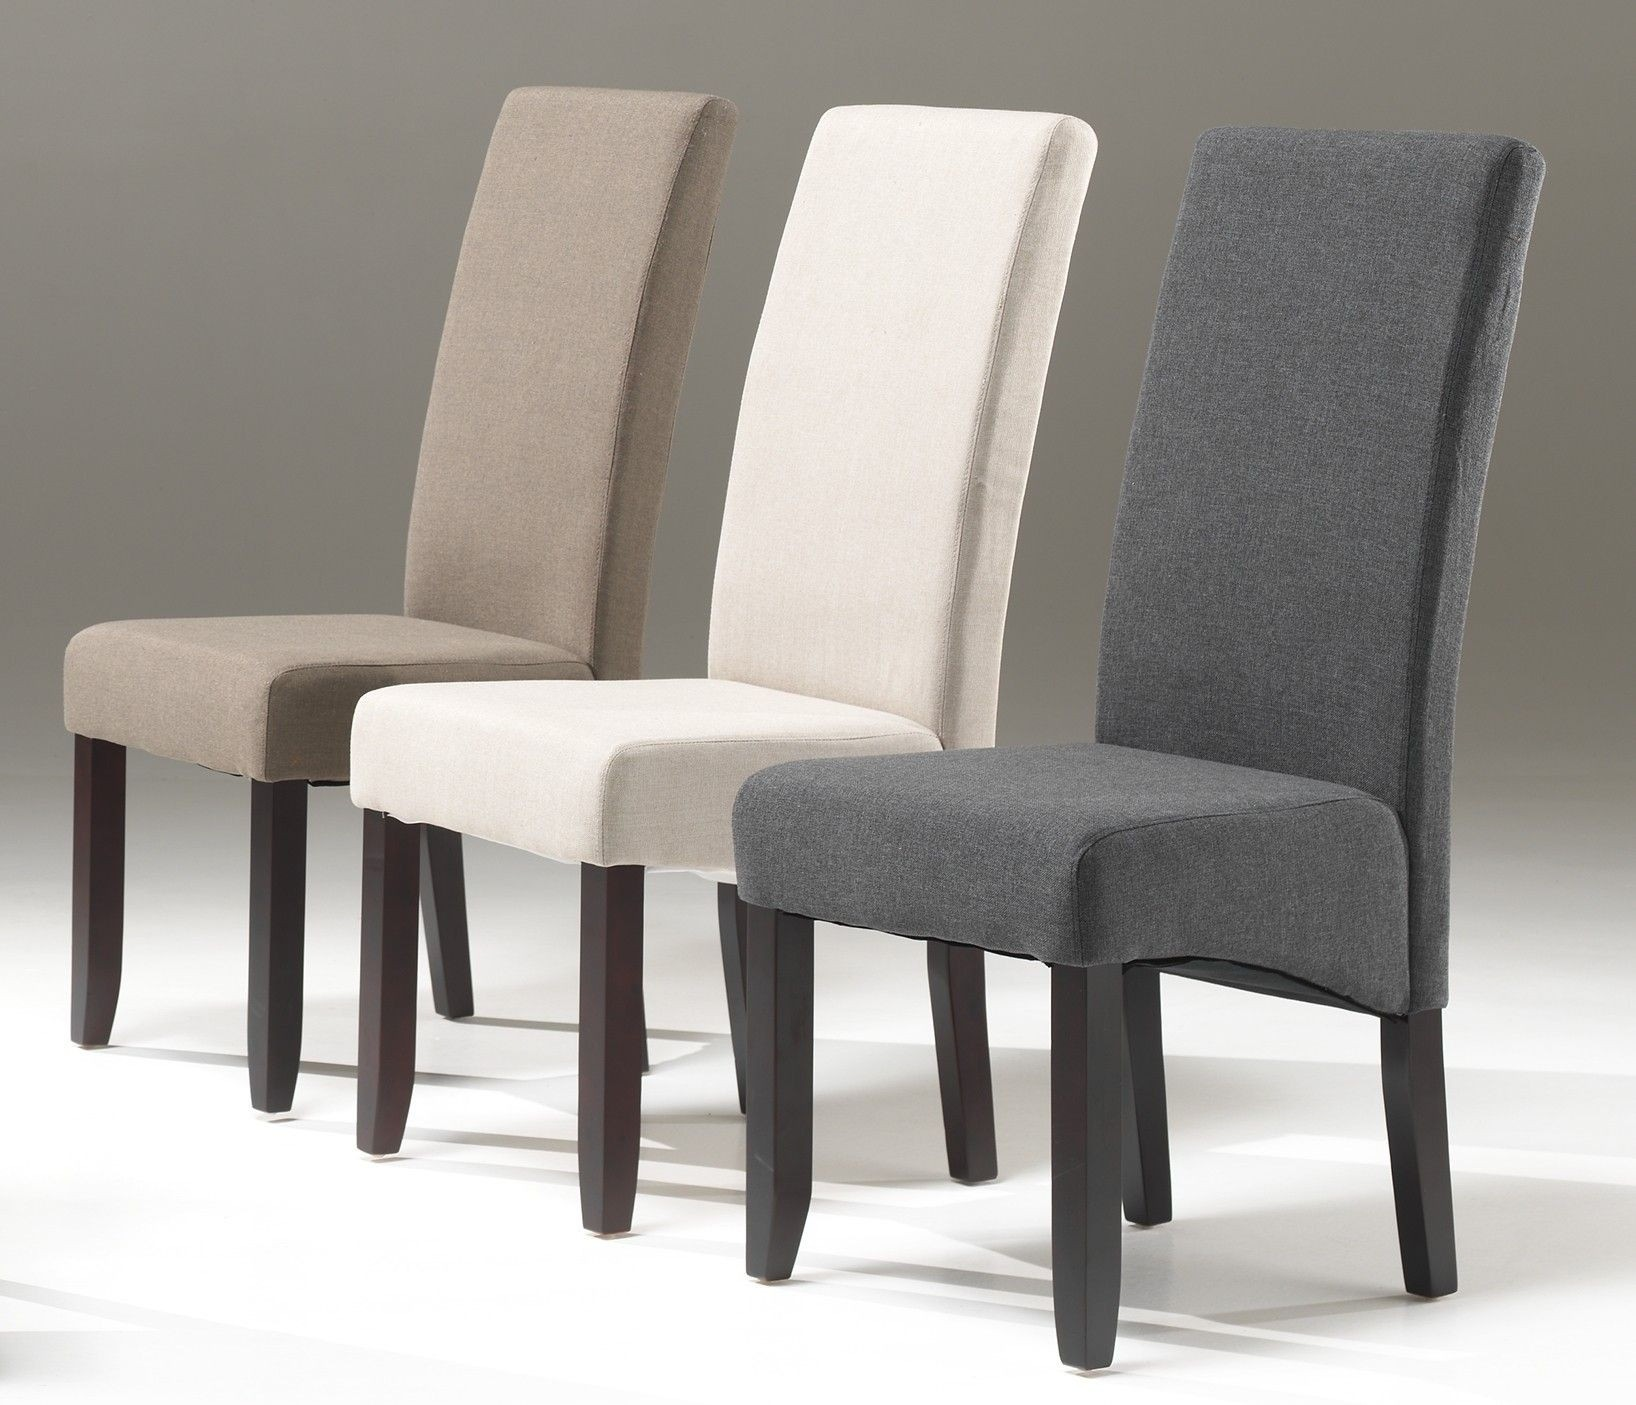 Chaise style scandinave groupon